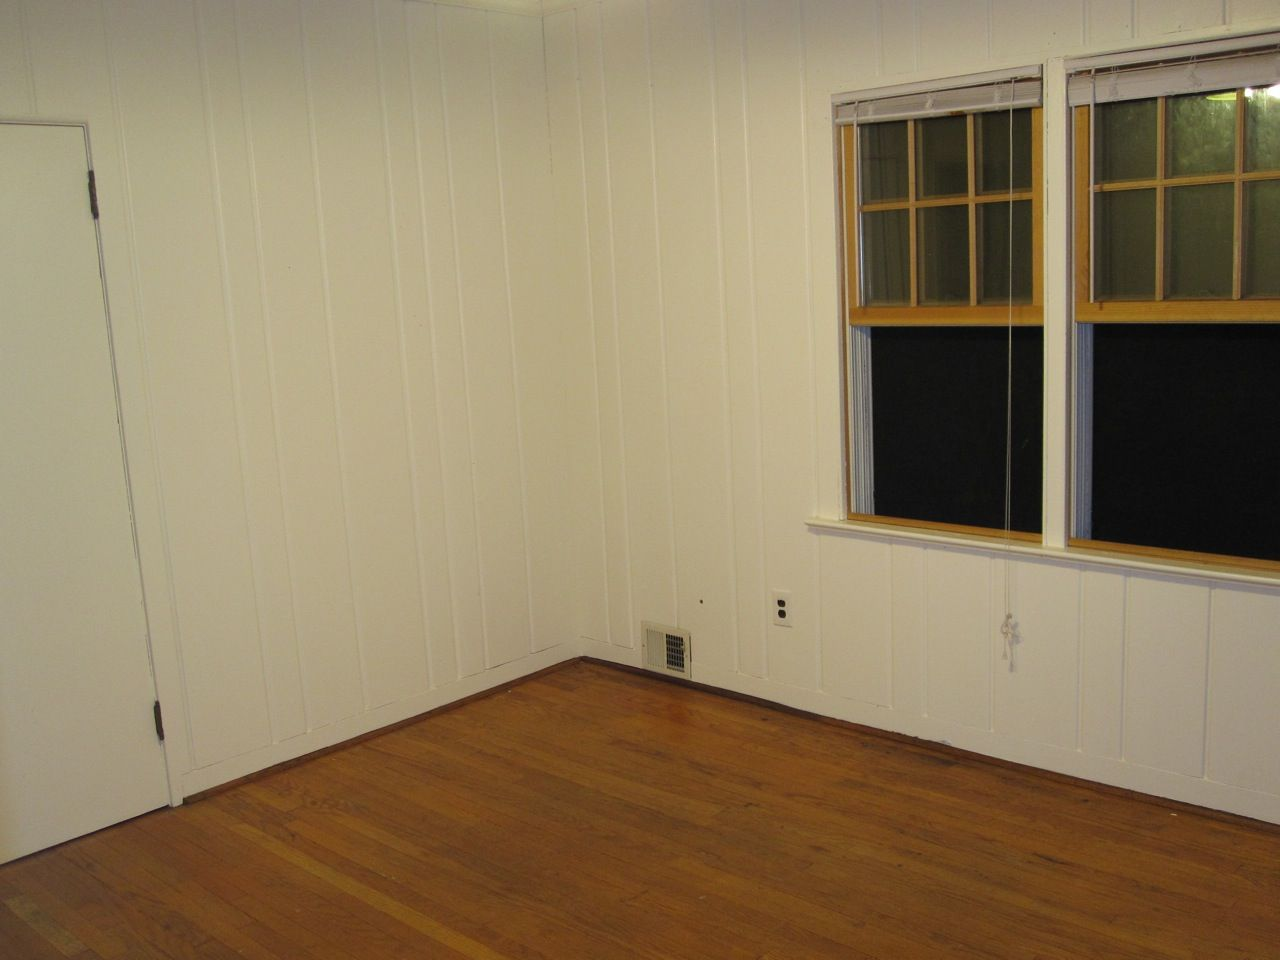 Painted paneling office transformation painted Wood paneling transformation